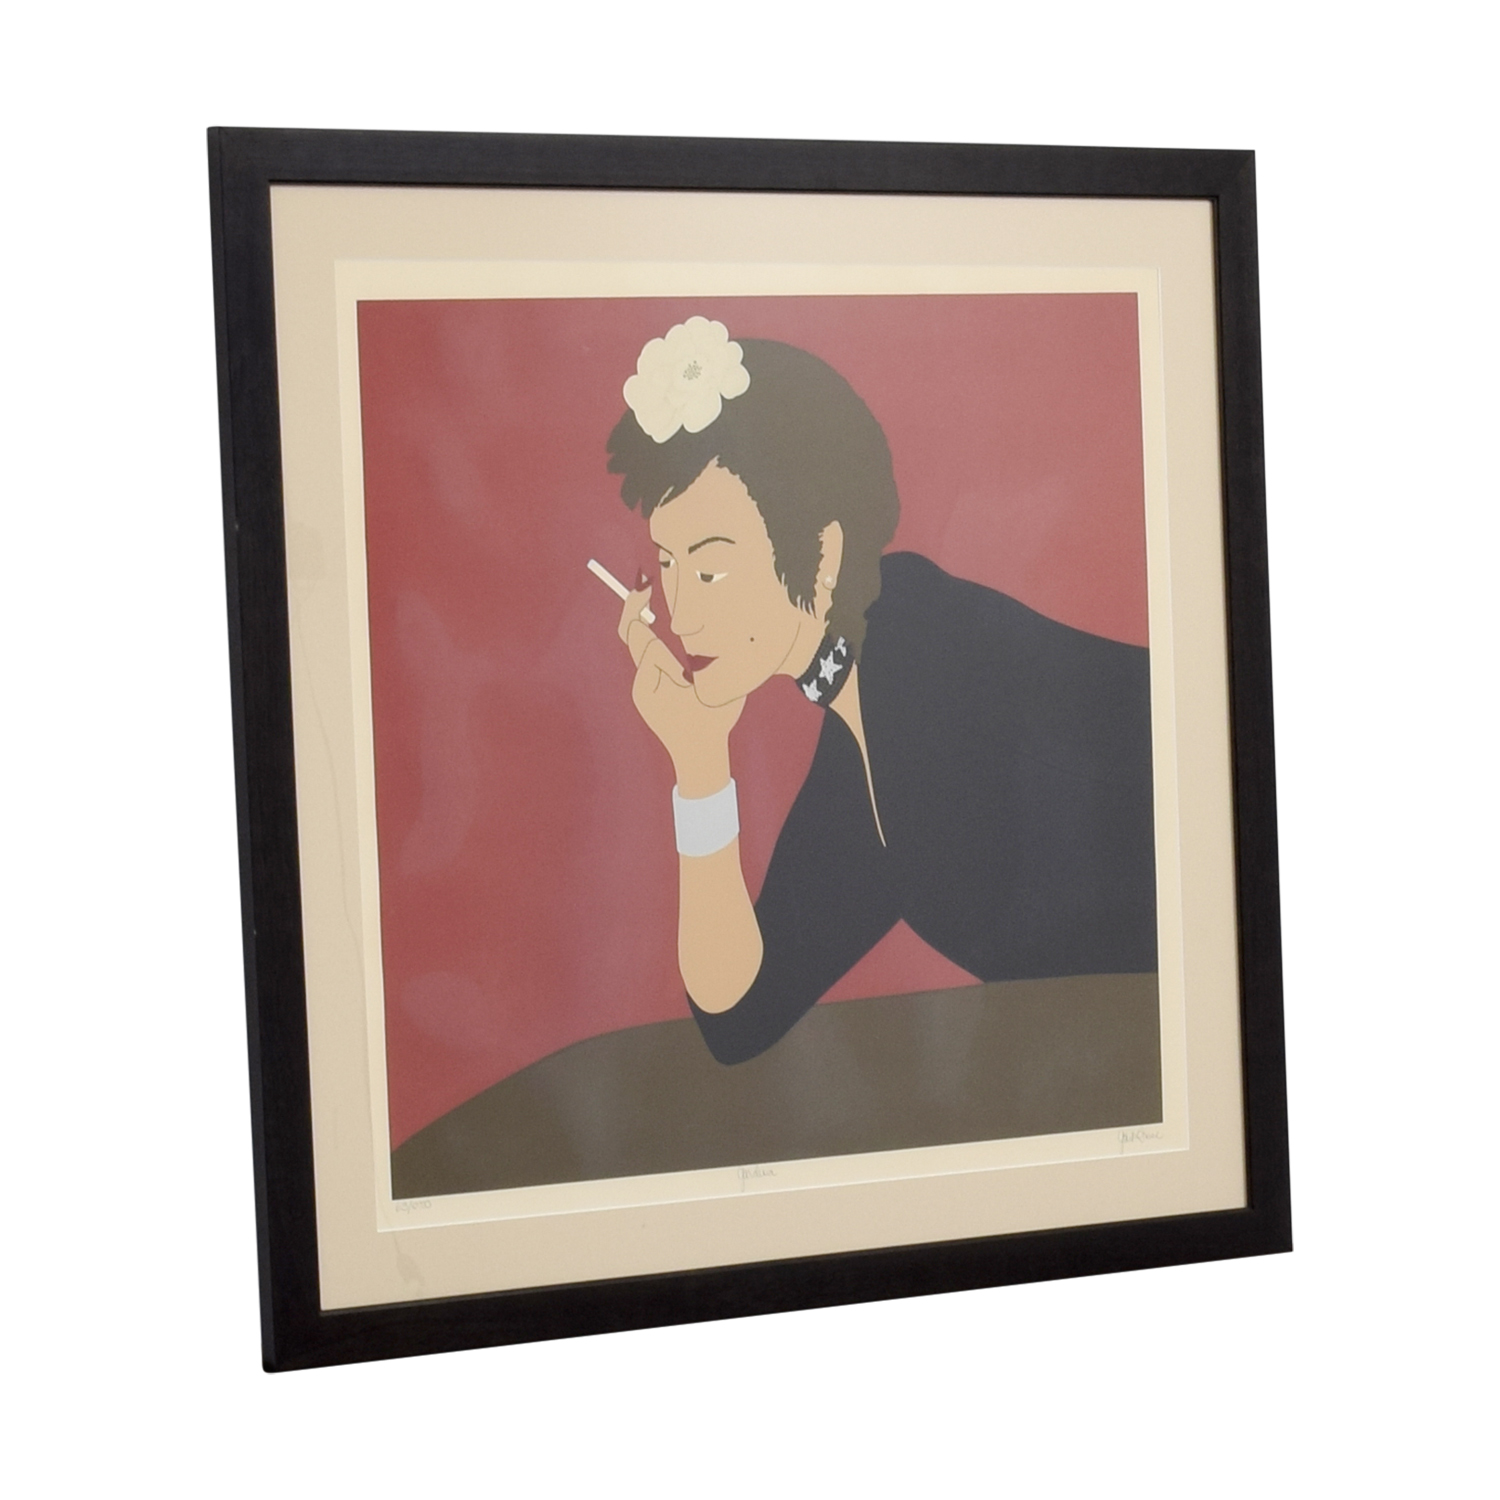 Gail Bruce Smoking Woman Framed Print sale